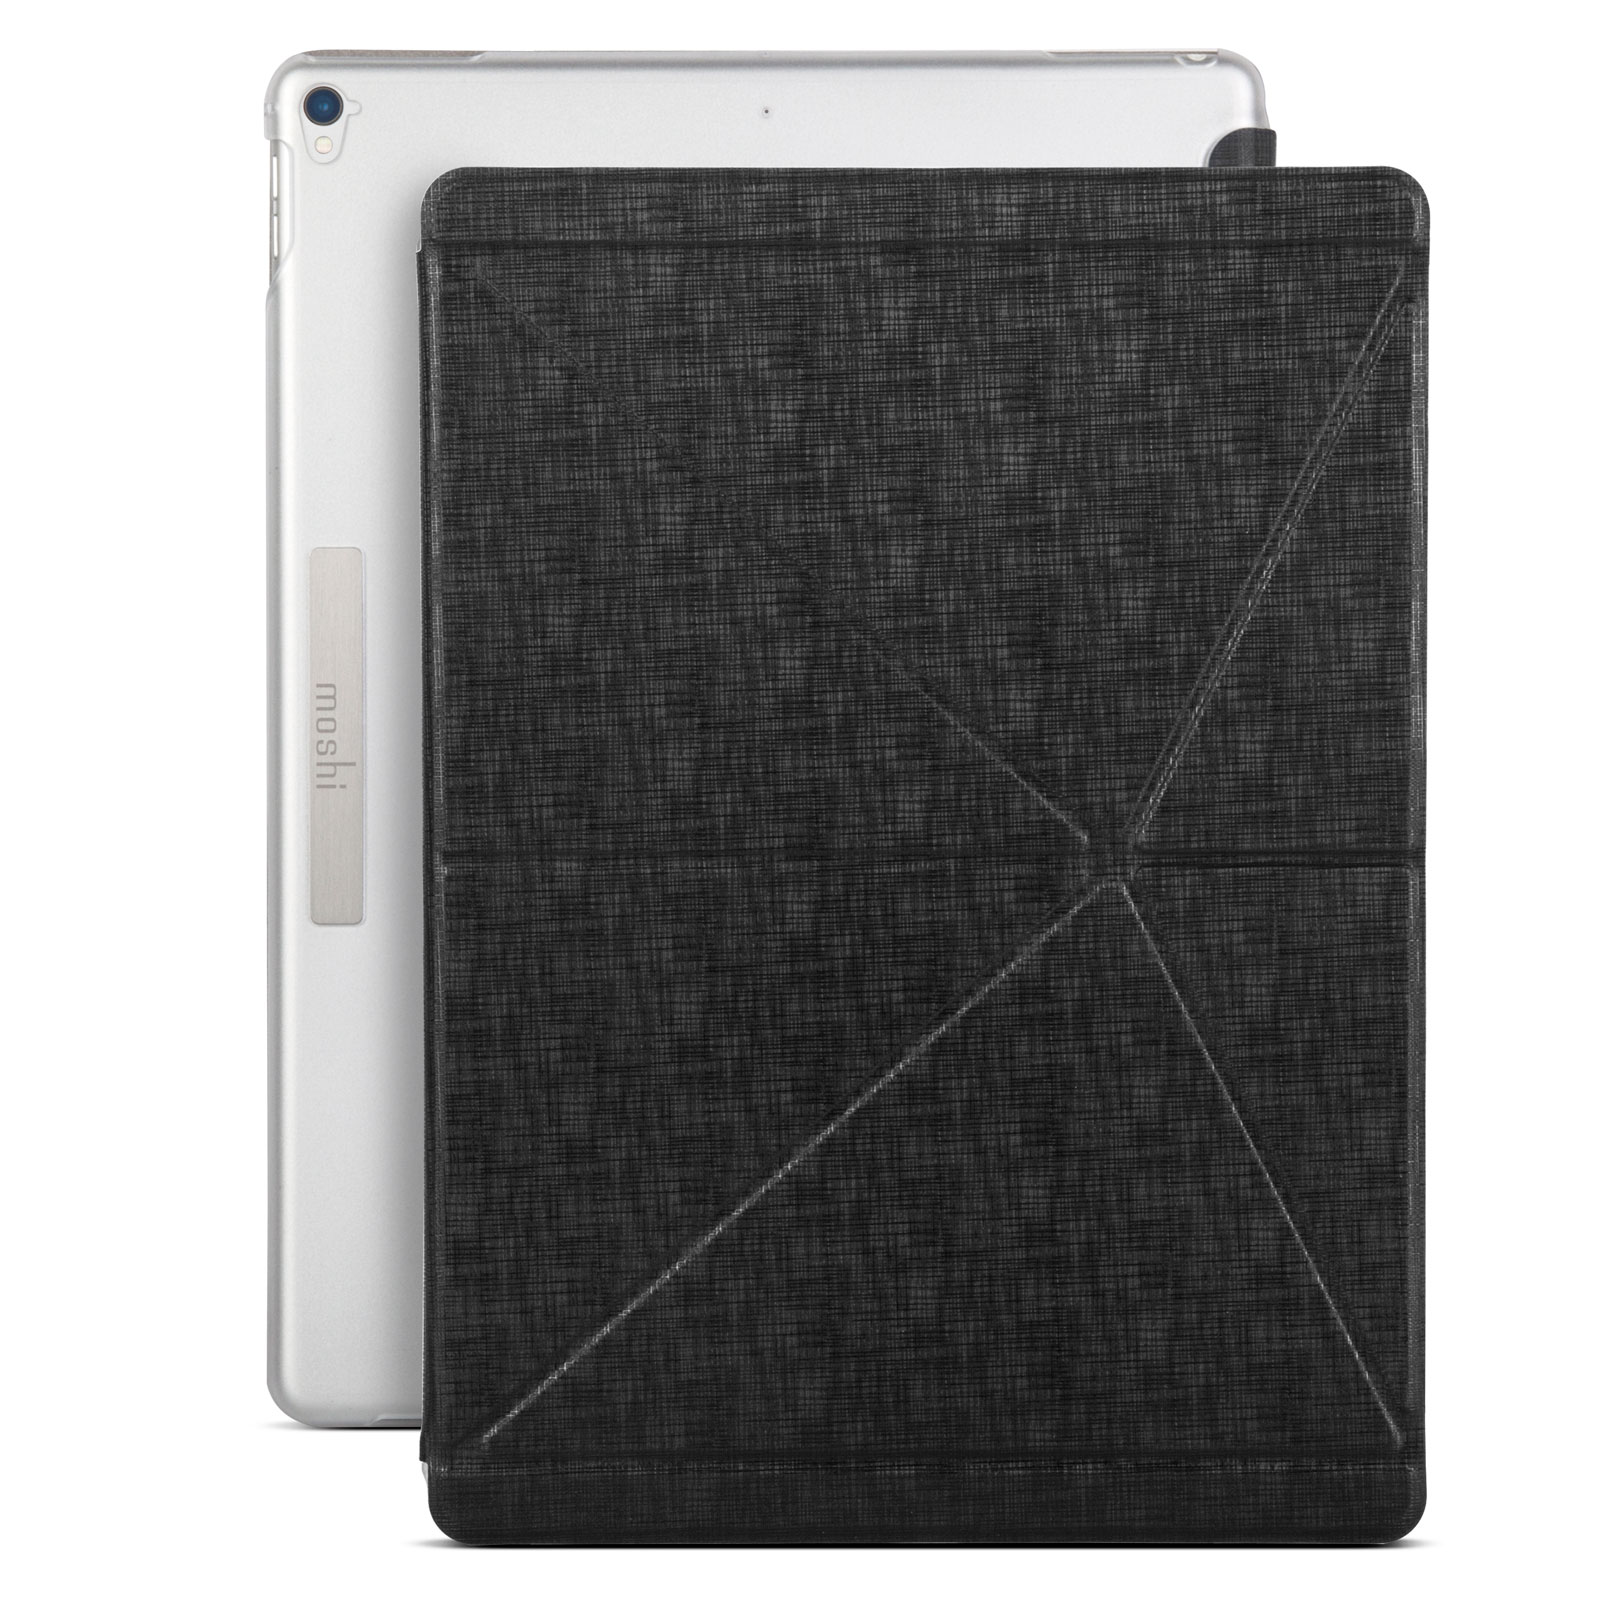 Moshi Versa Cover for iPad Pro 12.9 inch